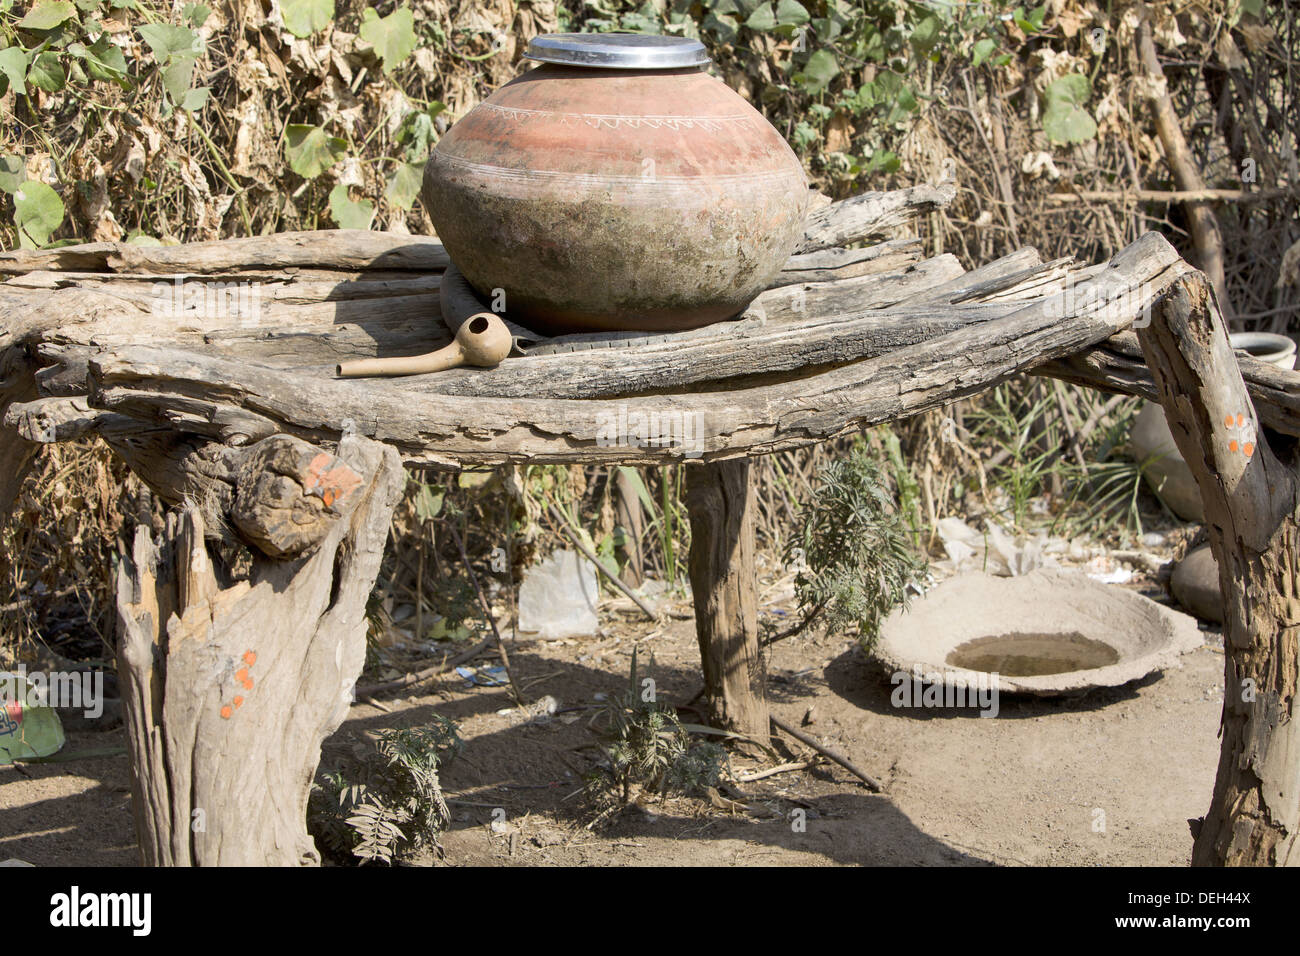 Water pot, Madhya Pradesh, Chada near Mandala district, India - Stock Image